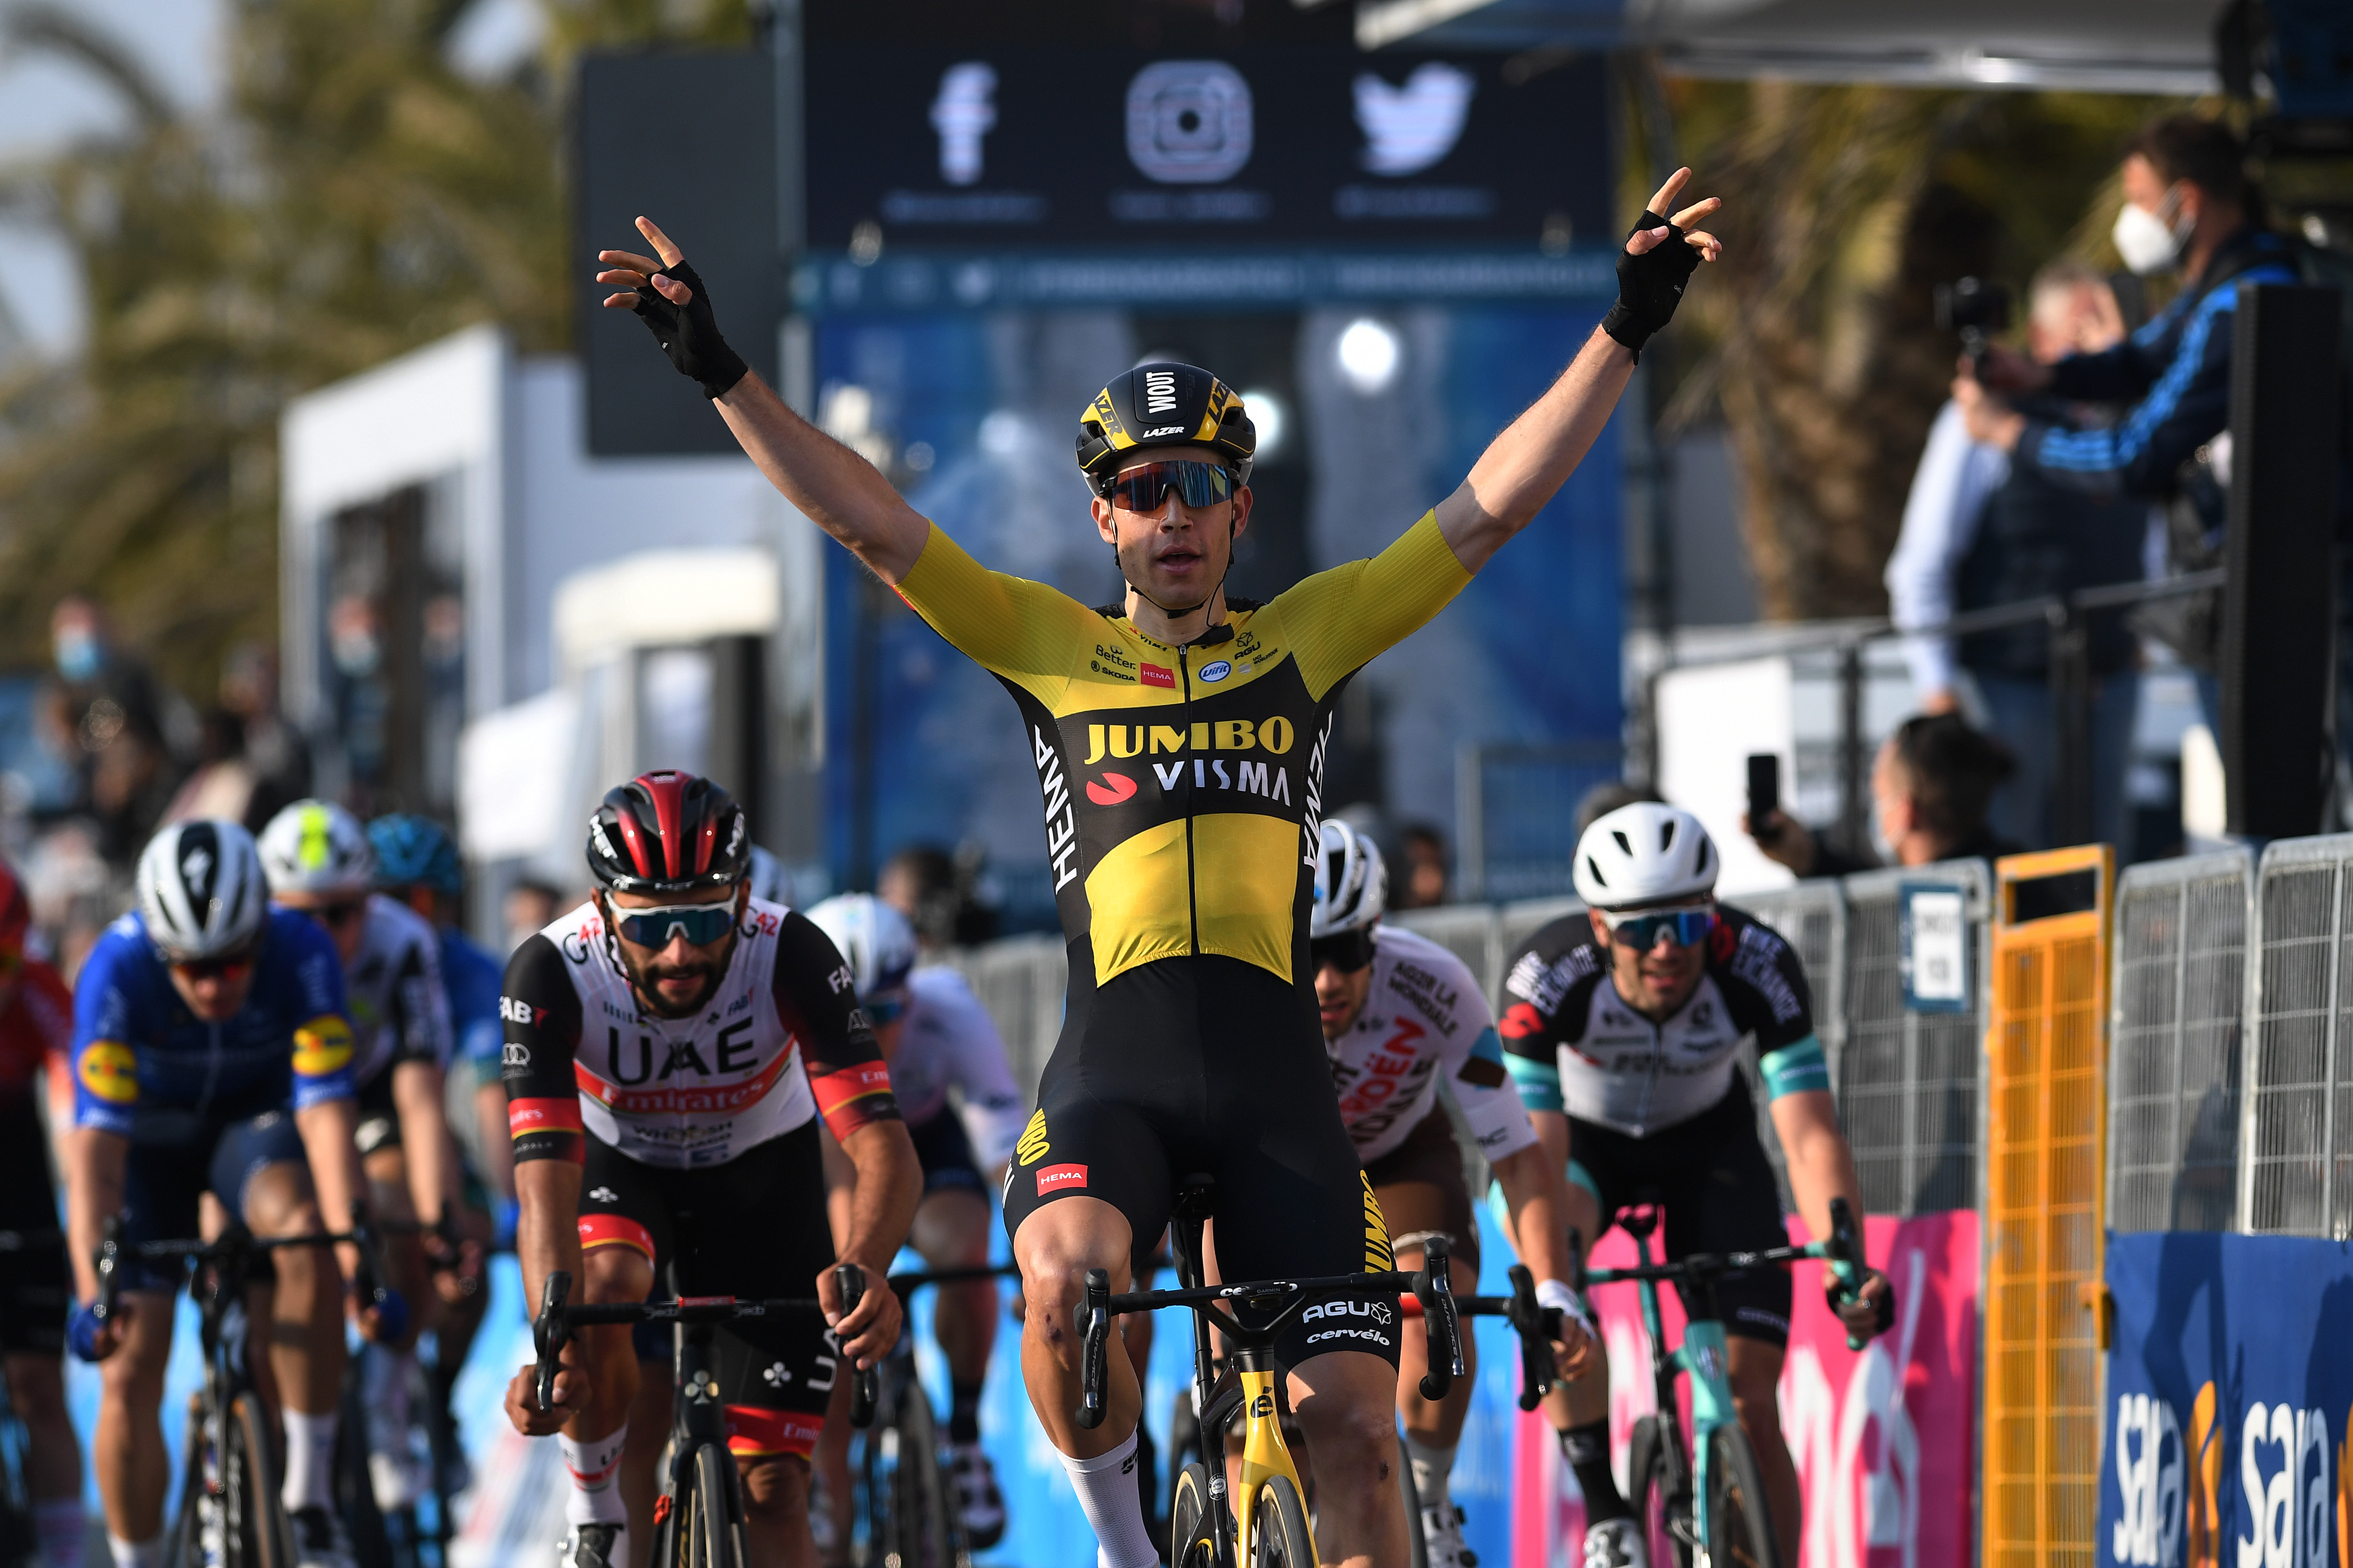 Wout van Aert wins stage 1 of Tirreno-Adriatico in Lido di Camaiore.